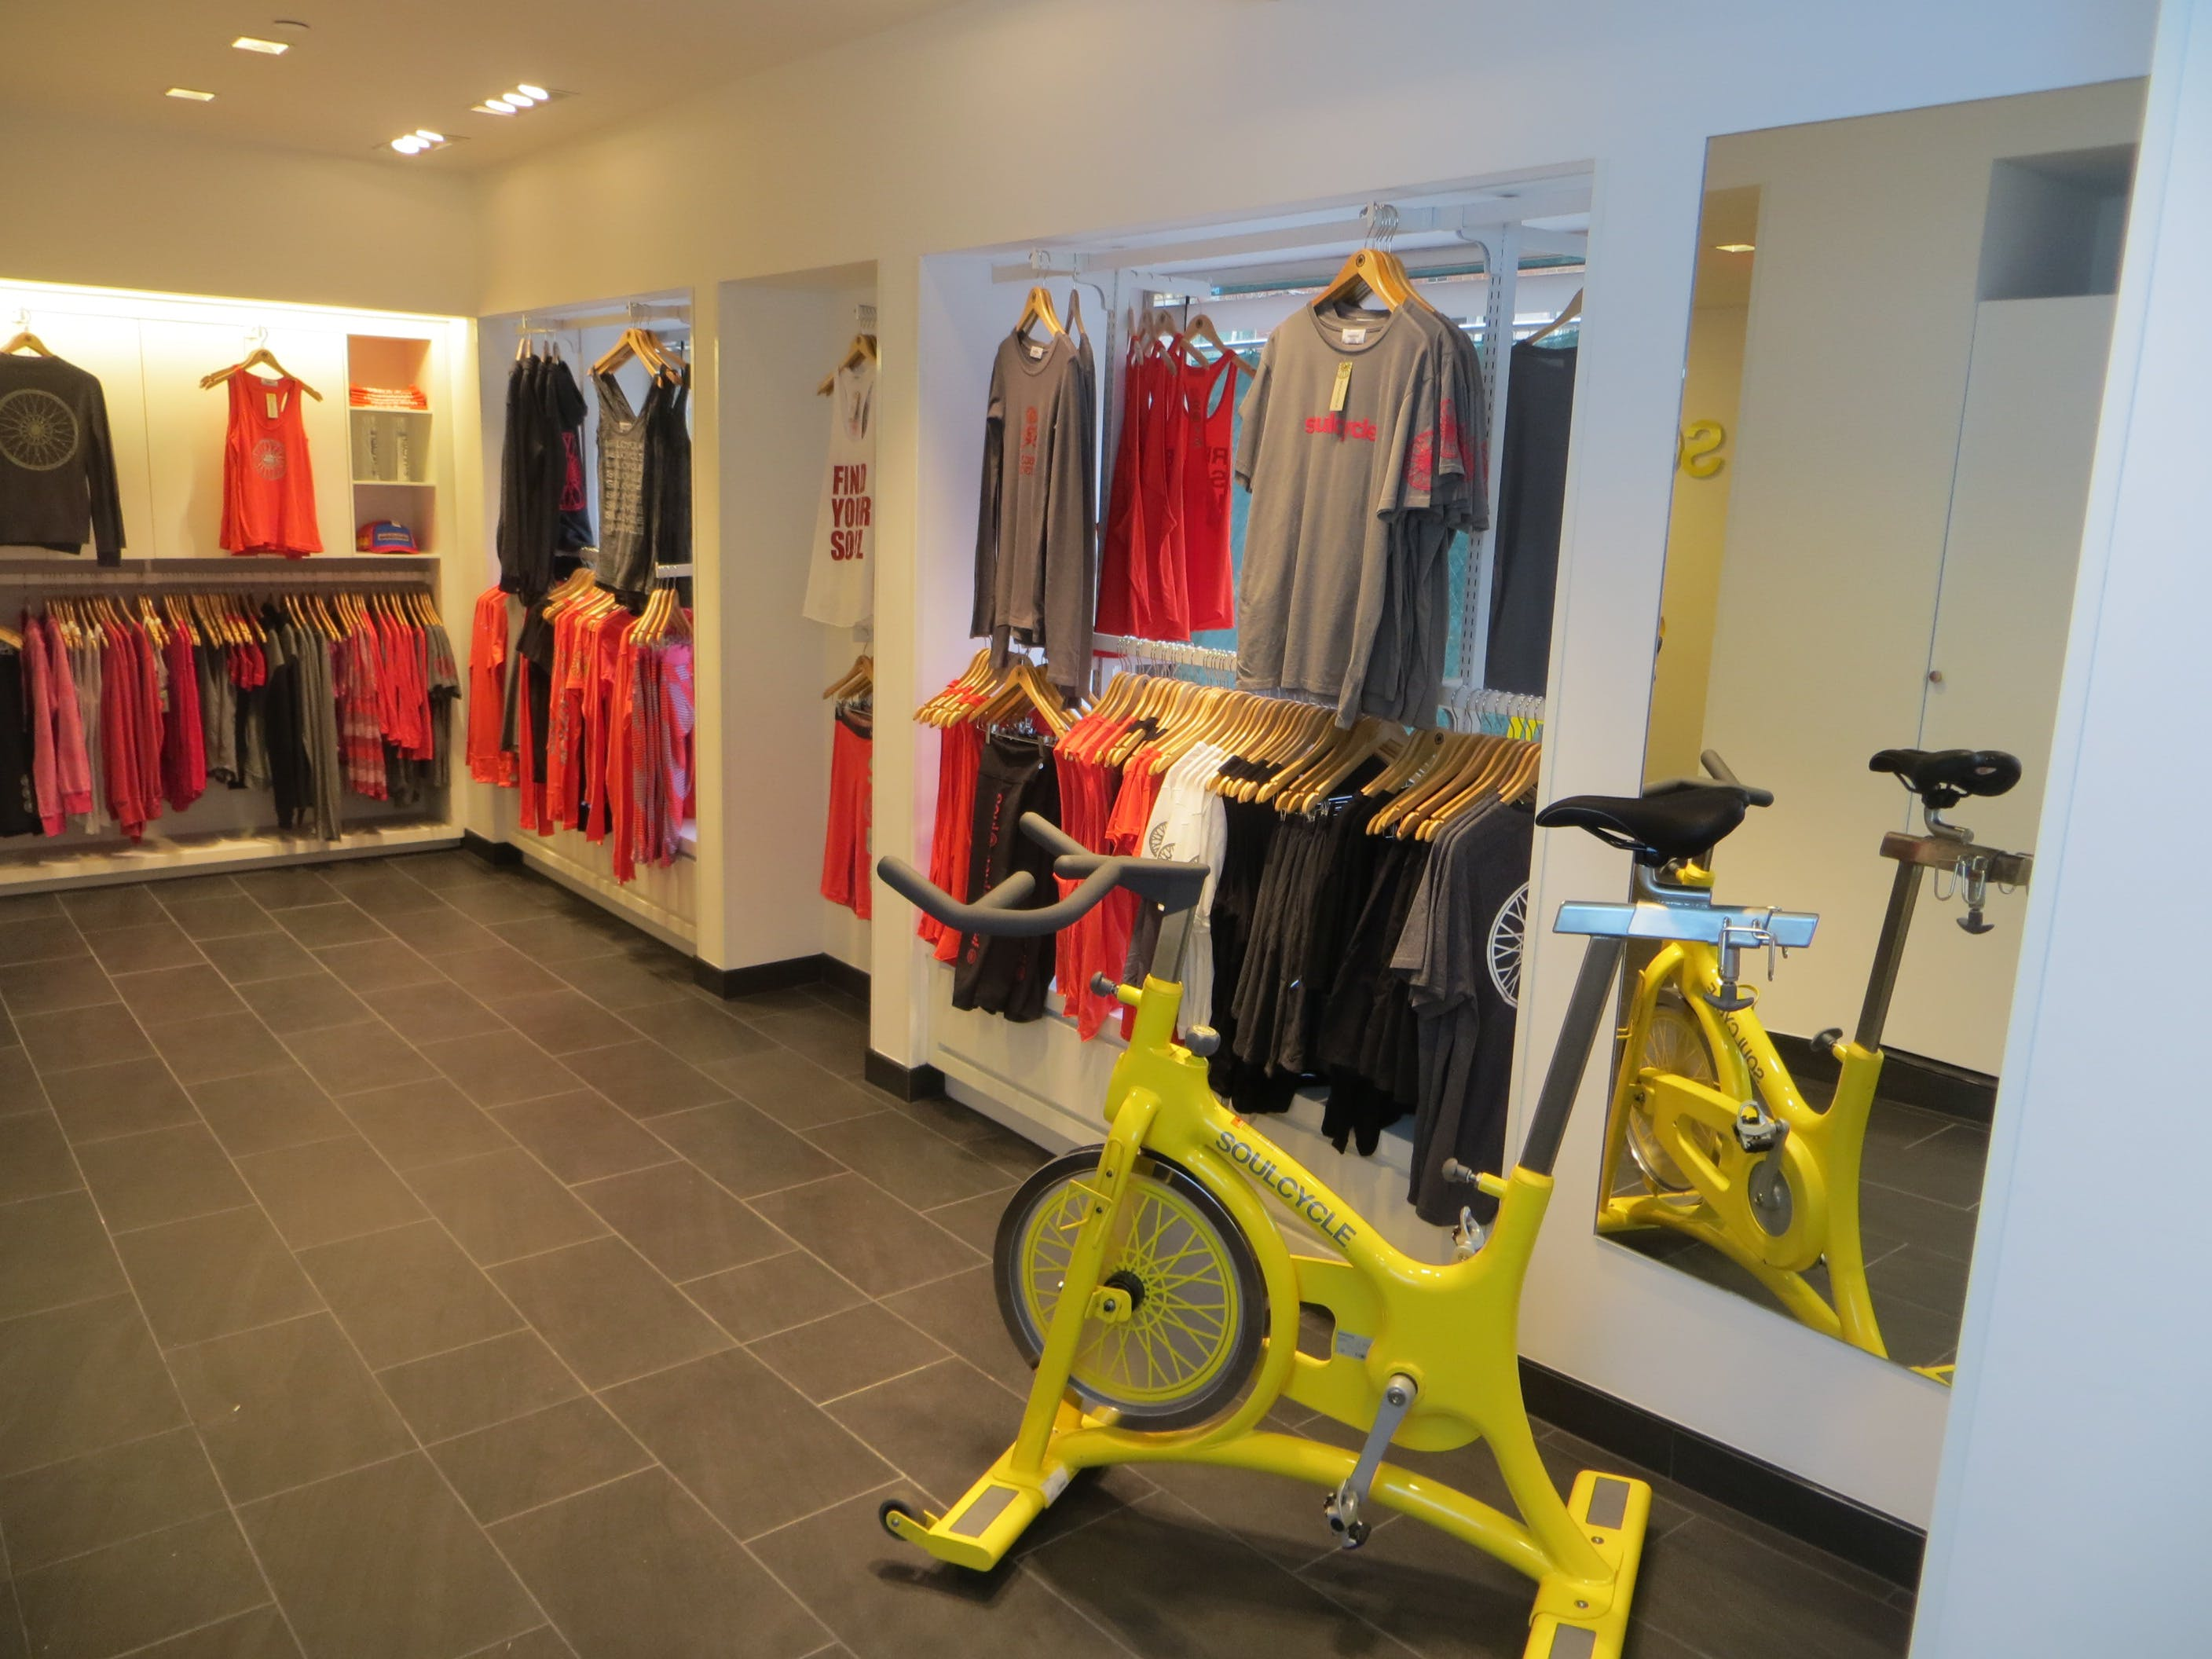 SoulCycle East 63rd Street   Olivia Lau   Archinect